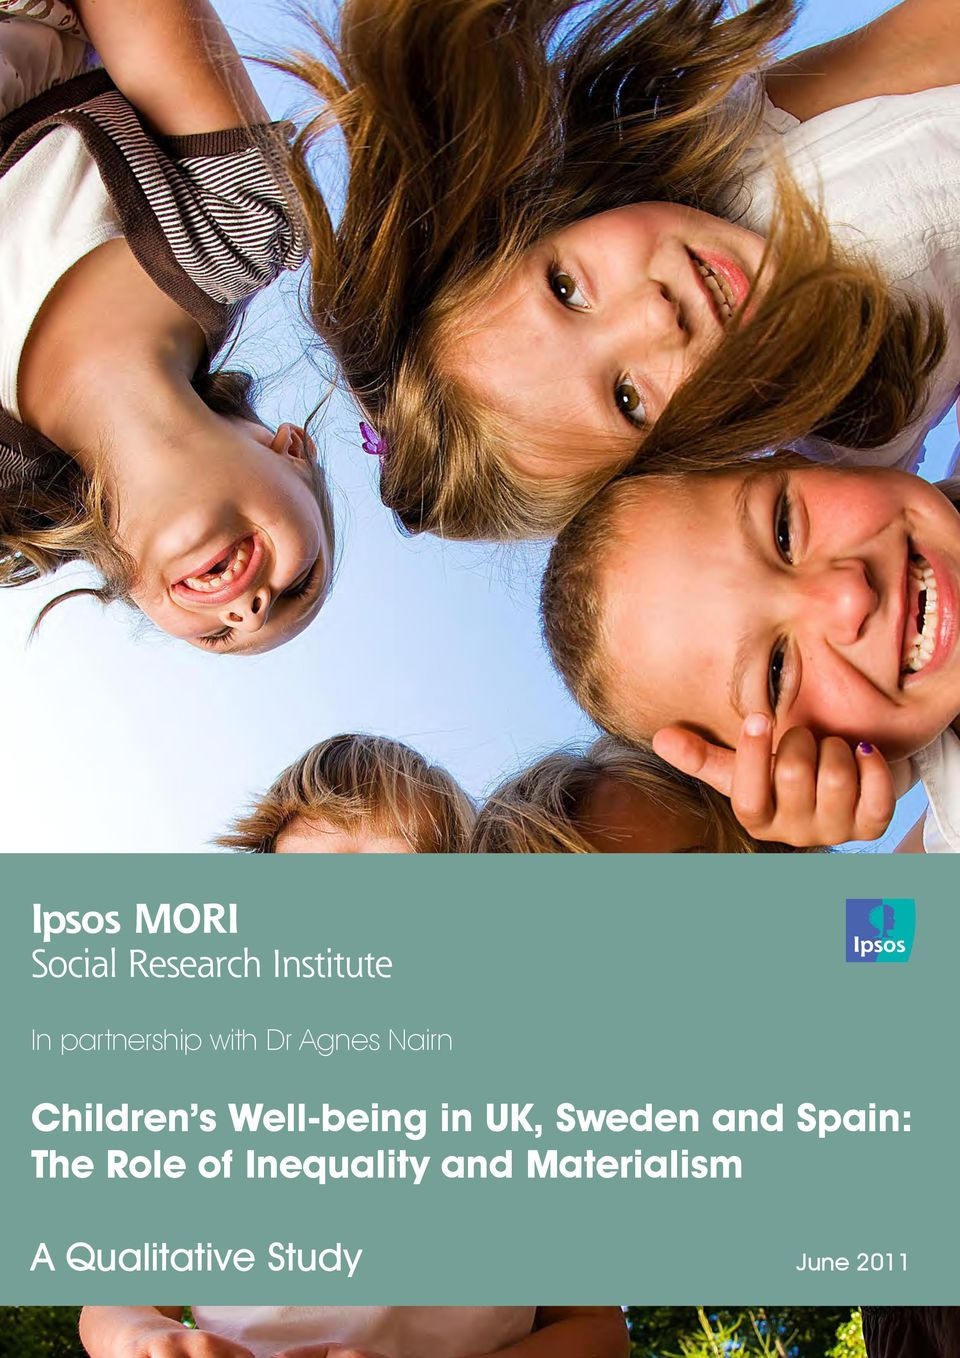 and Spain: The Role of Inequality and